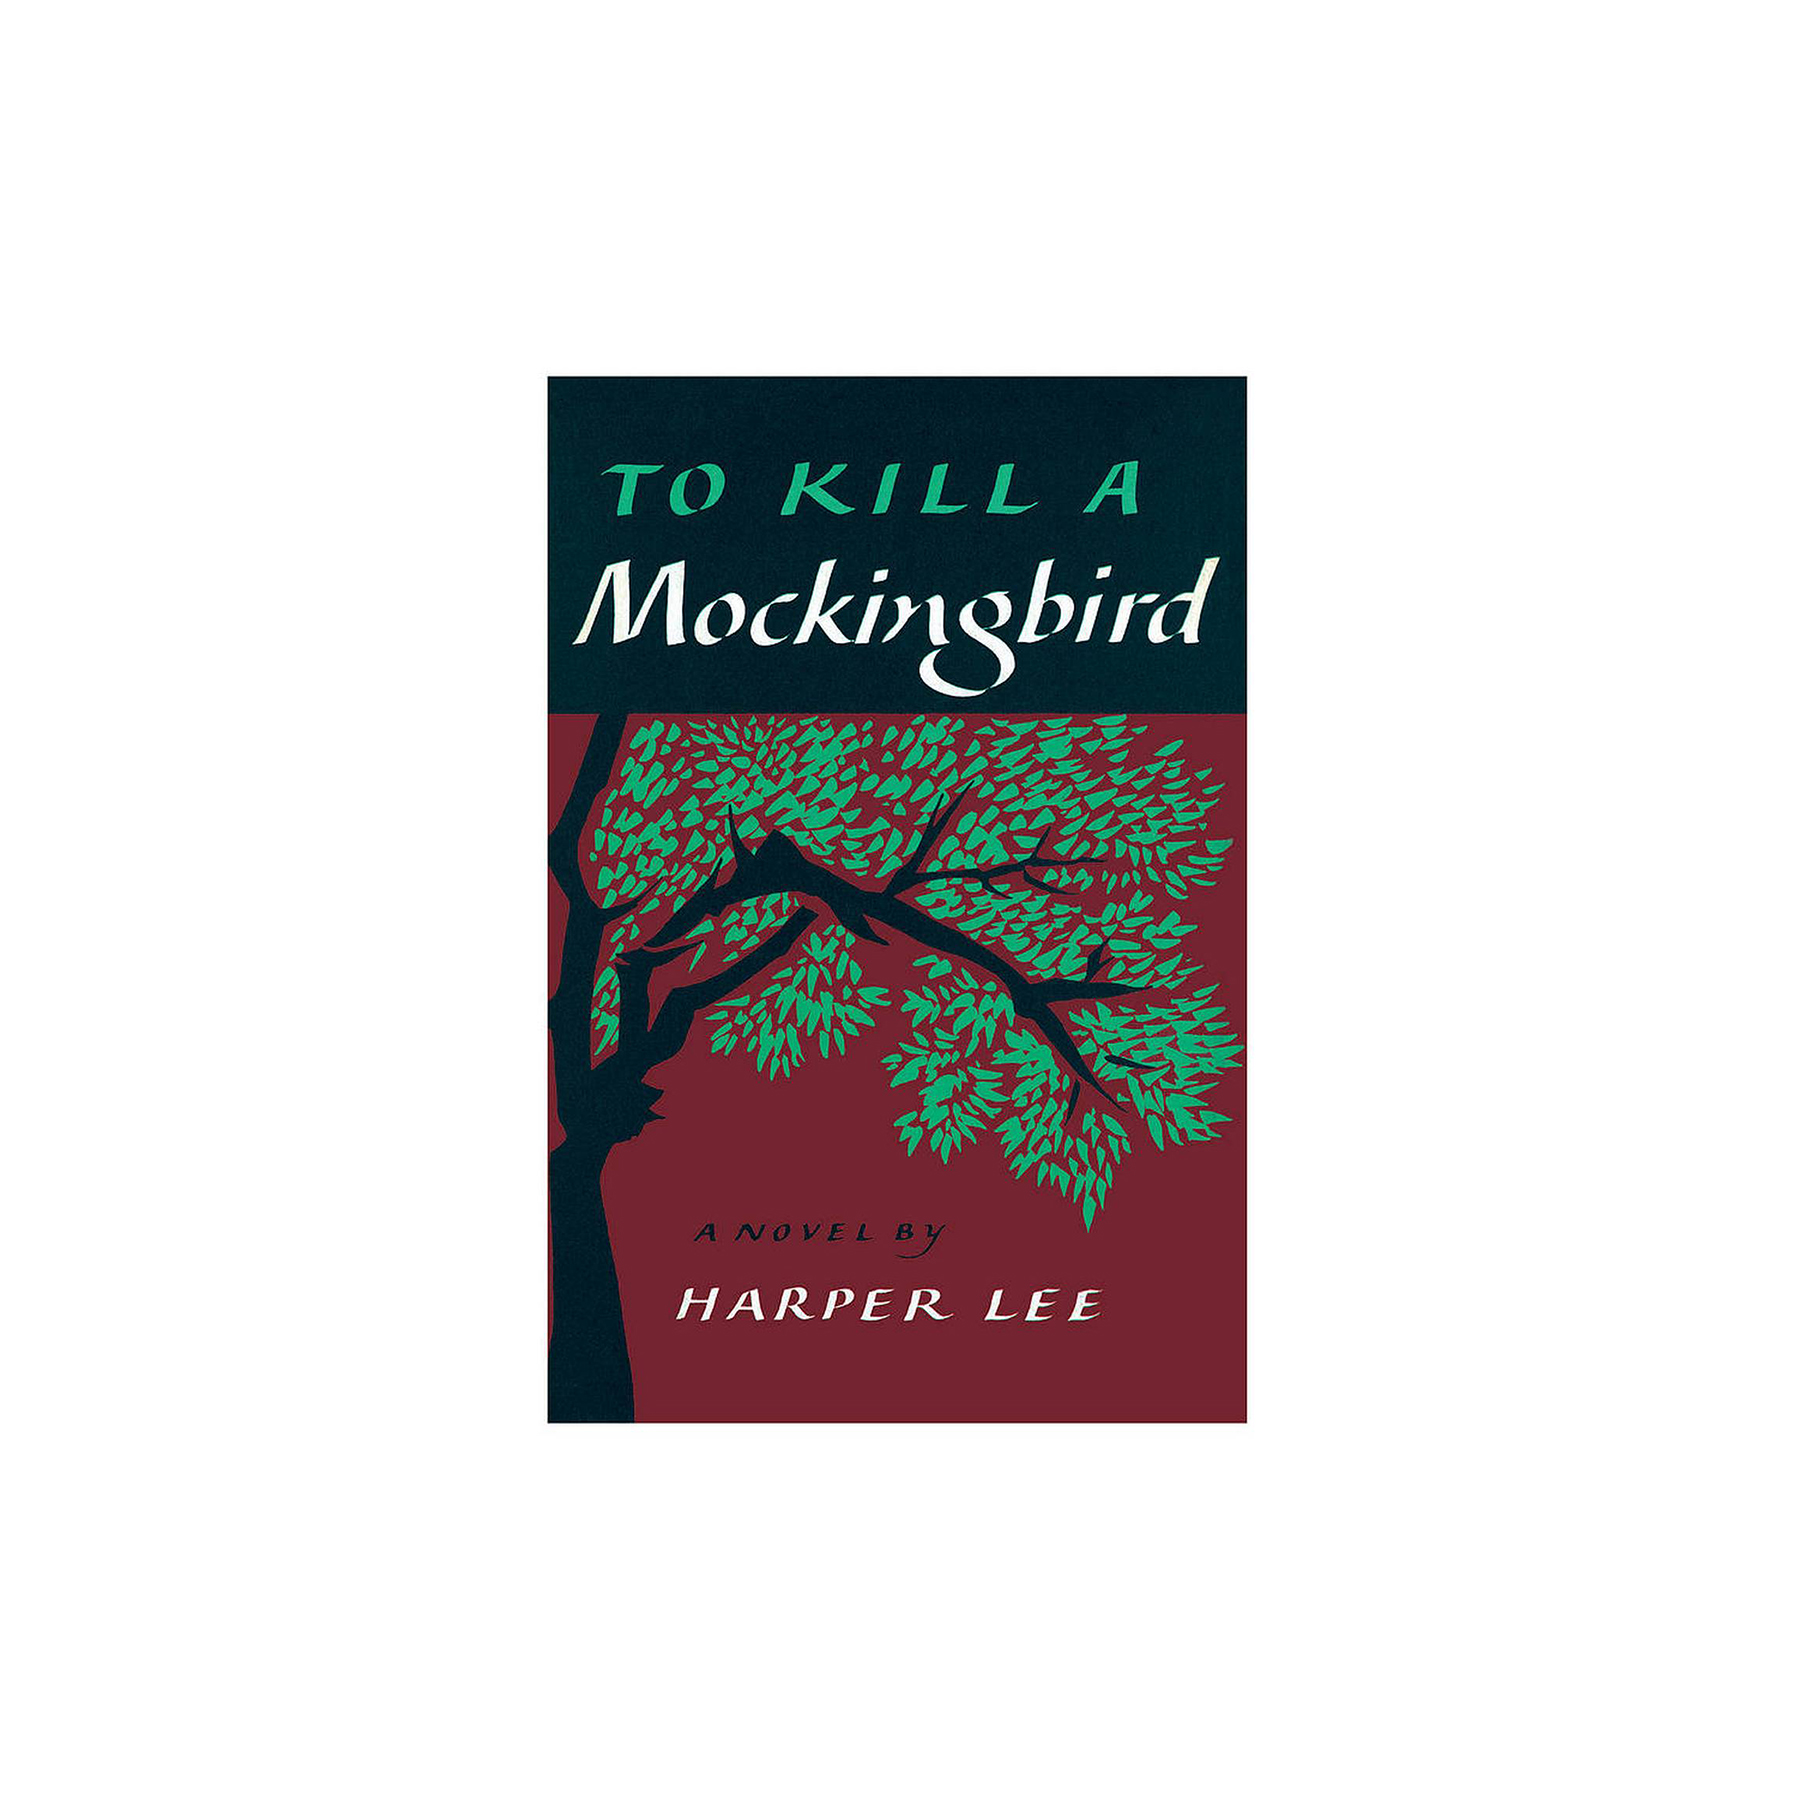 To Kill a Mockingbird, by Harper Lee